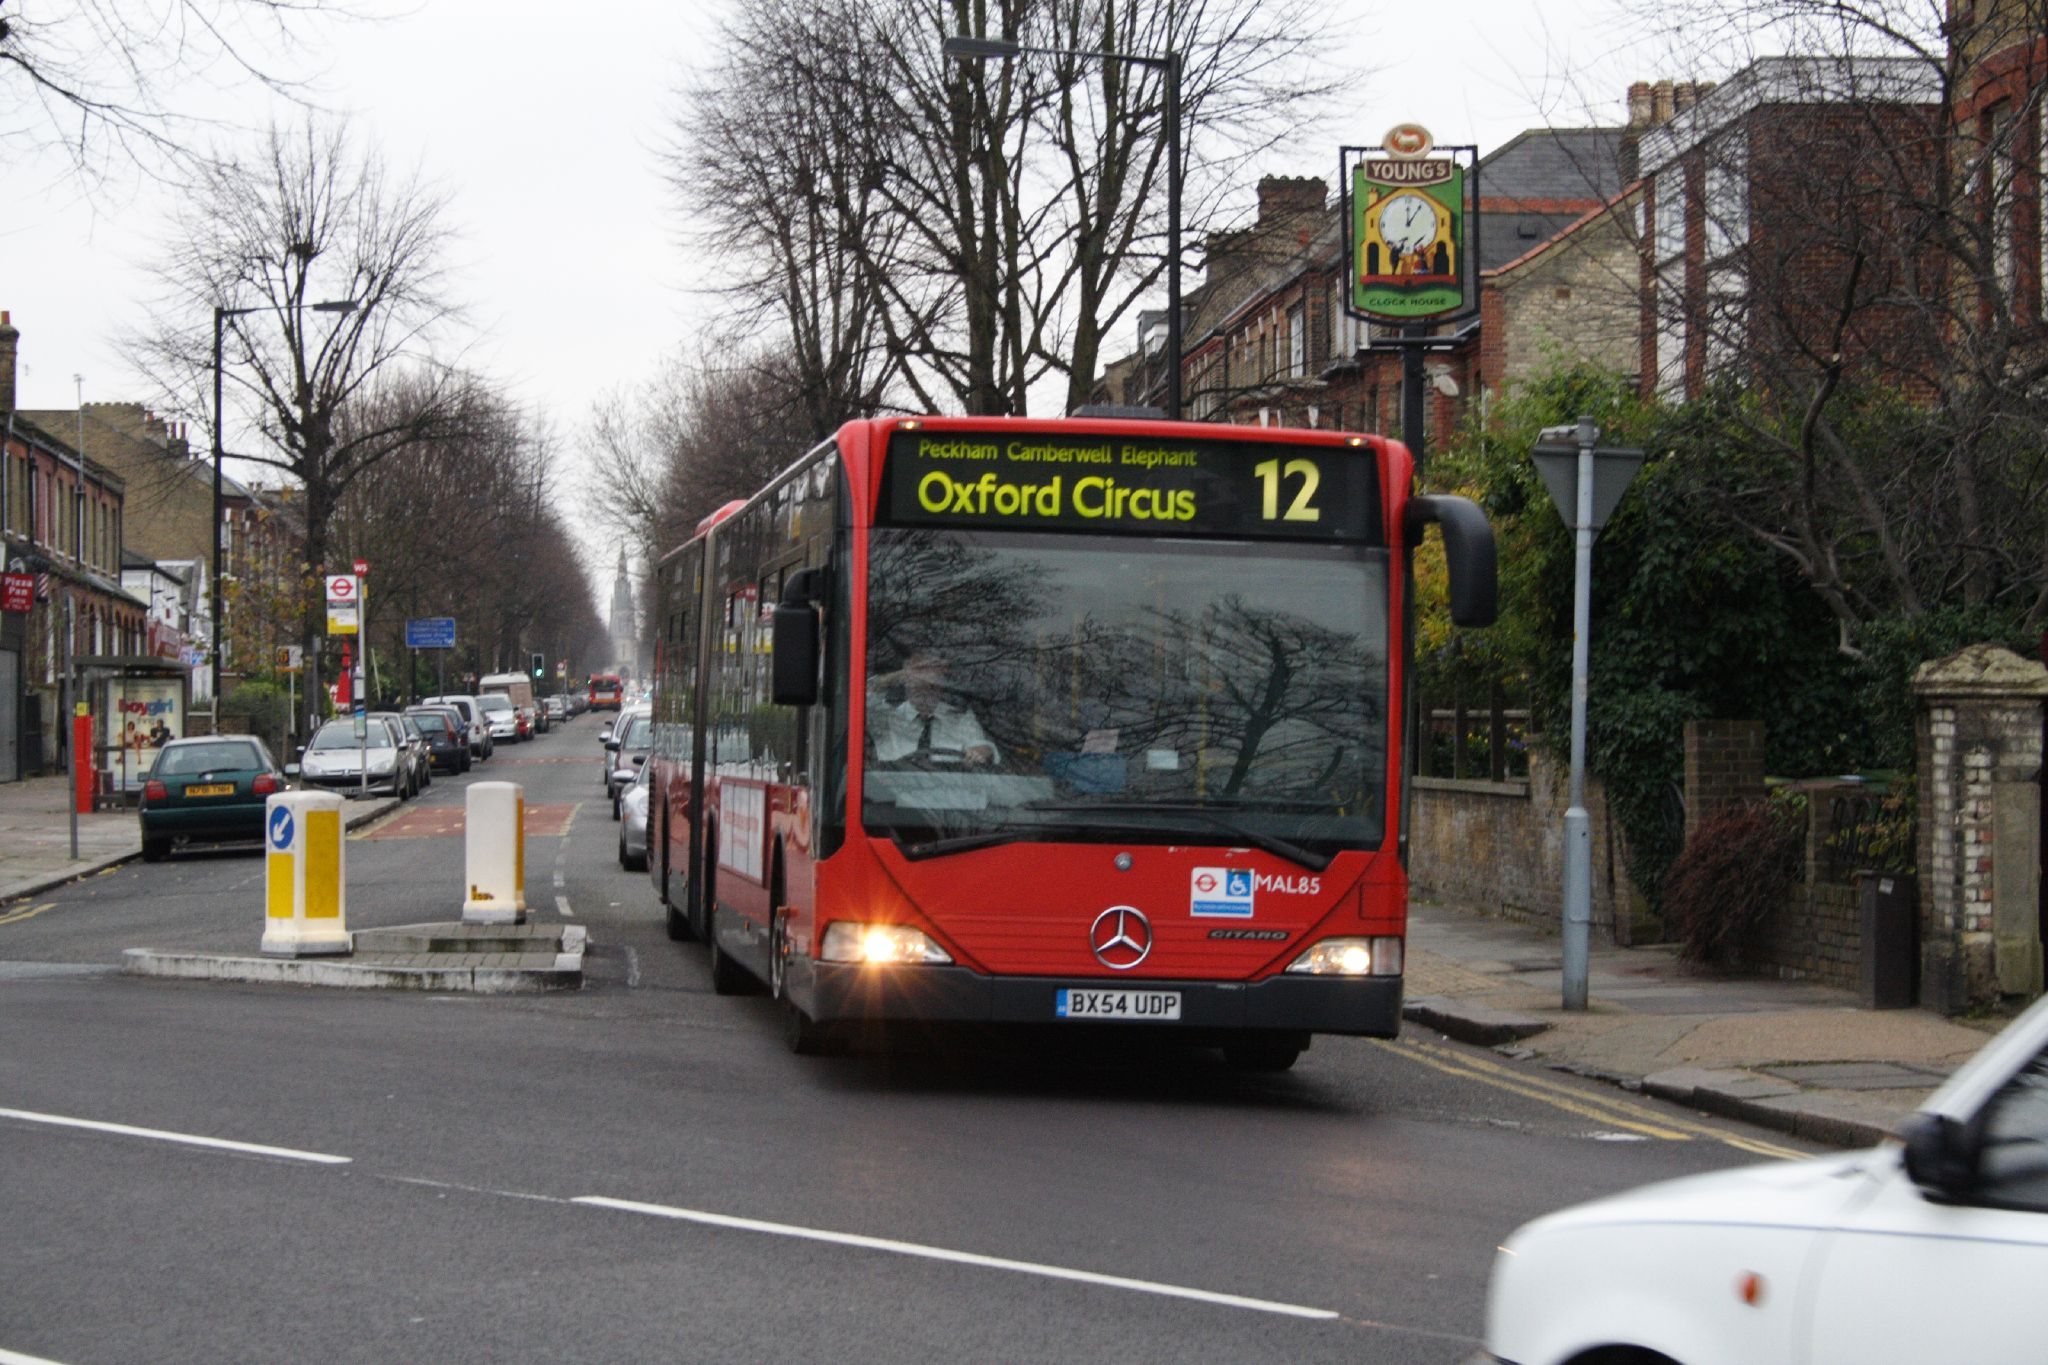 file:london bus route 12 leaving barry road - wikimedia commons